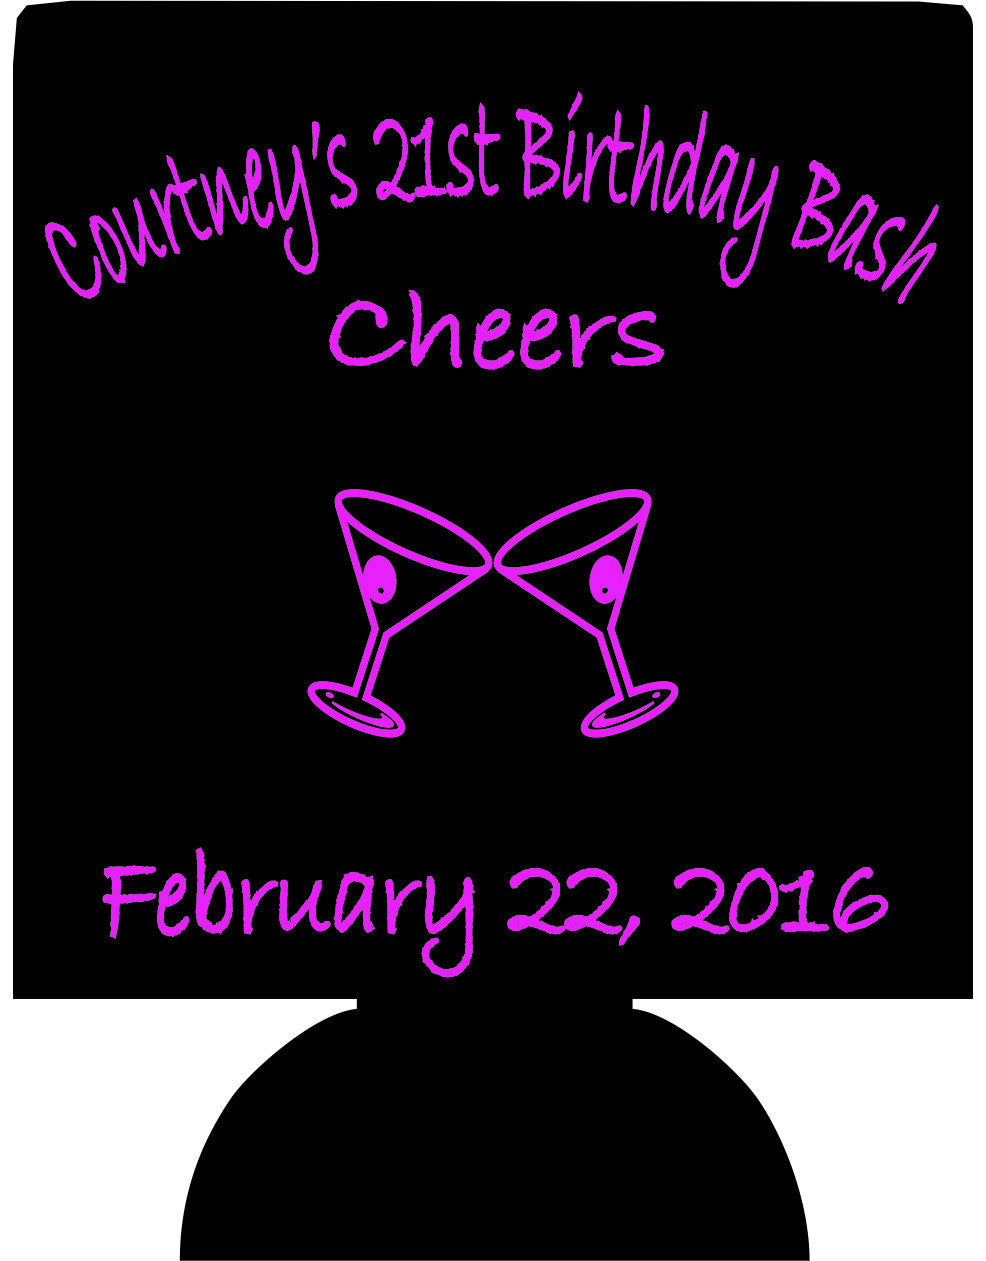 Cheers 21st Birthday bash Koozies ideas